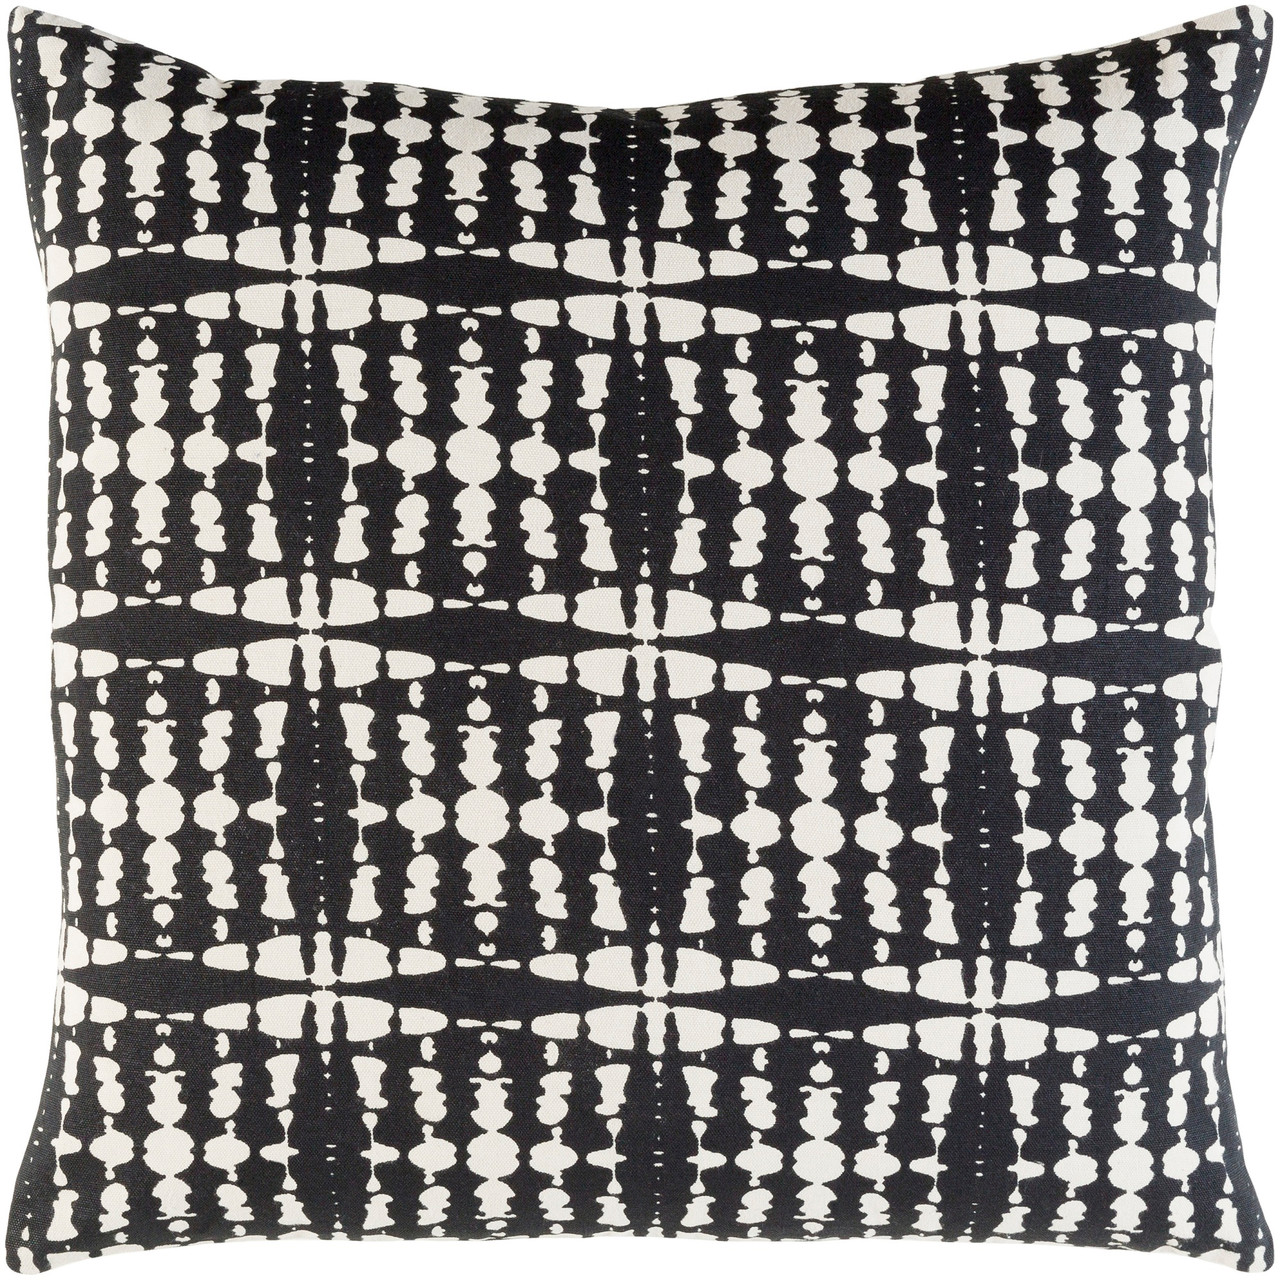 20 Black Beige Screen Printed Square Woven Throw Pillow Cover With Knife Edge Christmas Central